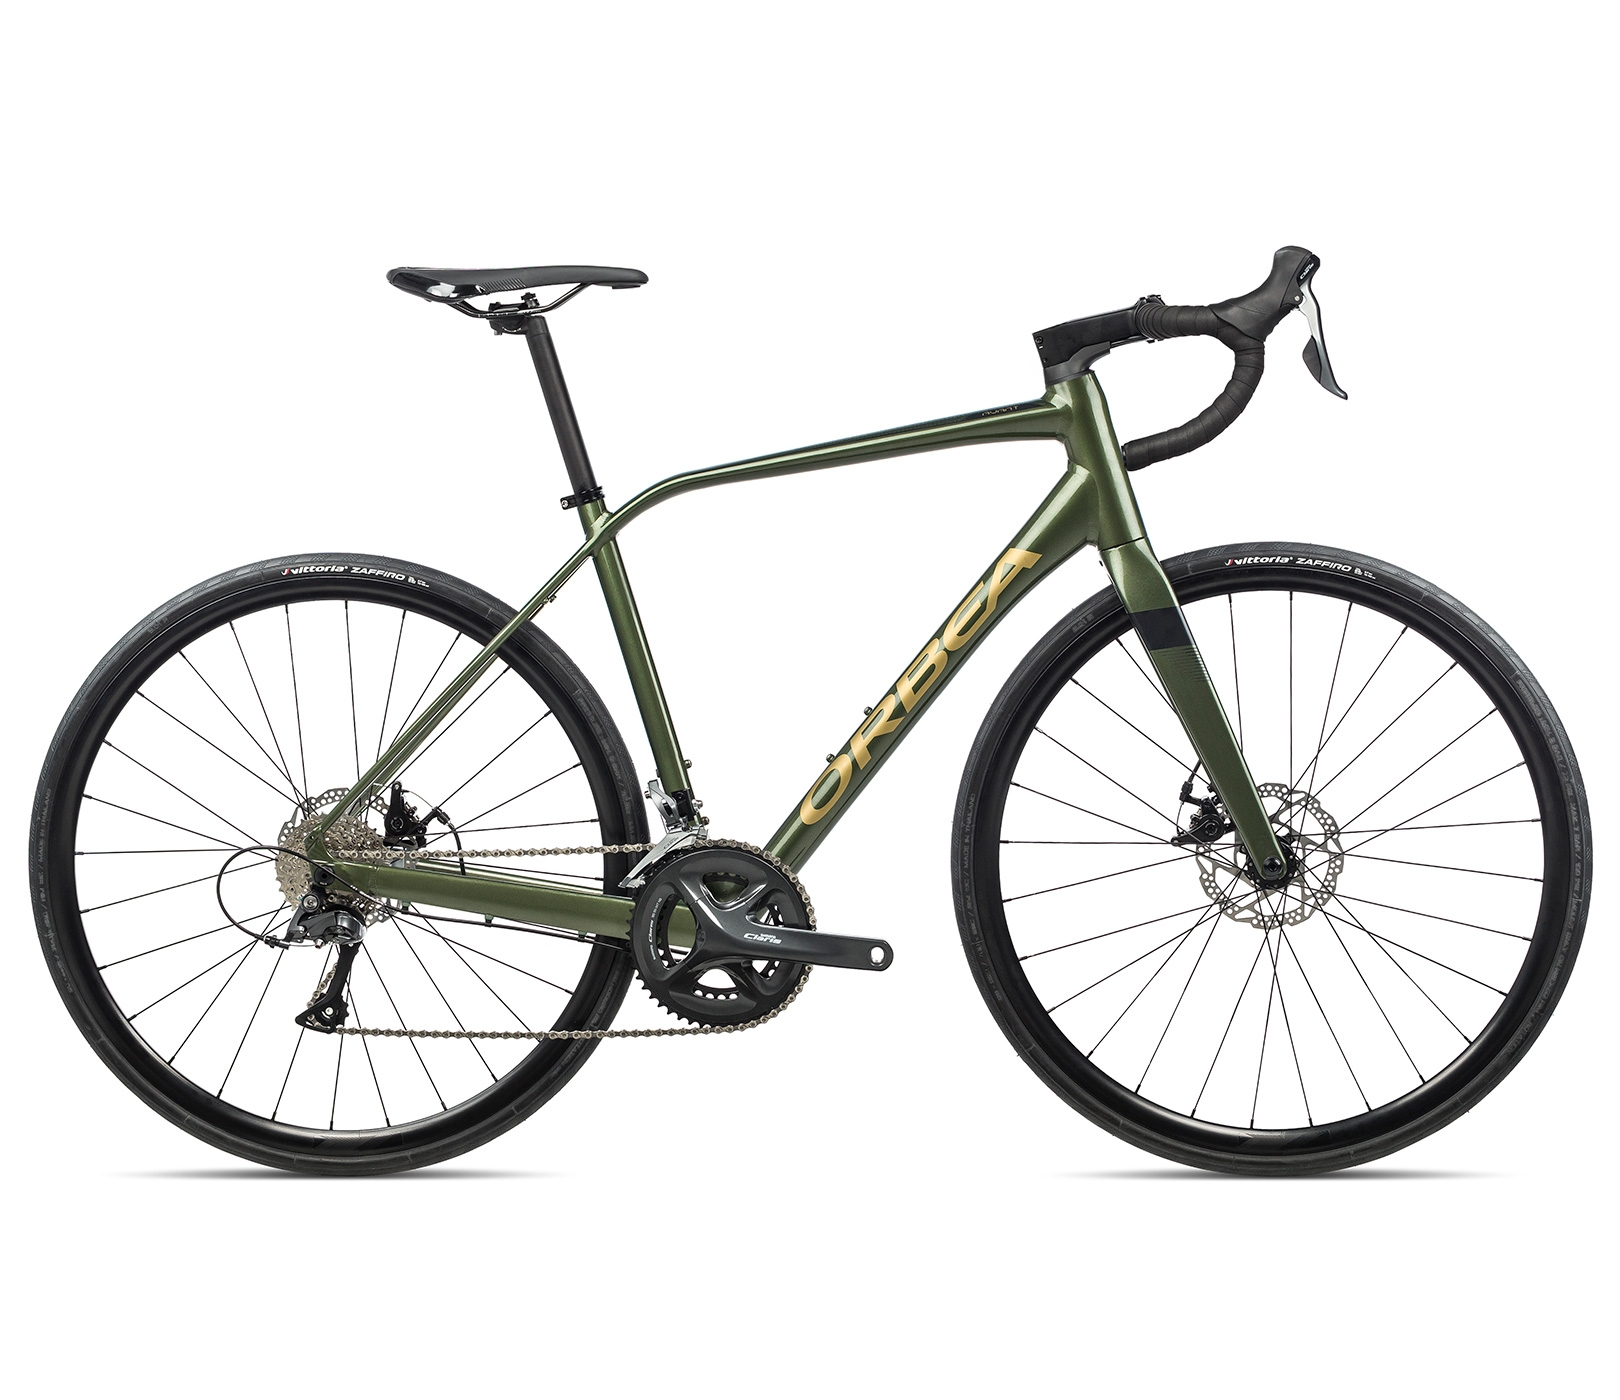 Orbea Avant H60-D 2021 Road Bike at Dales Cycles Glasgow